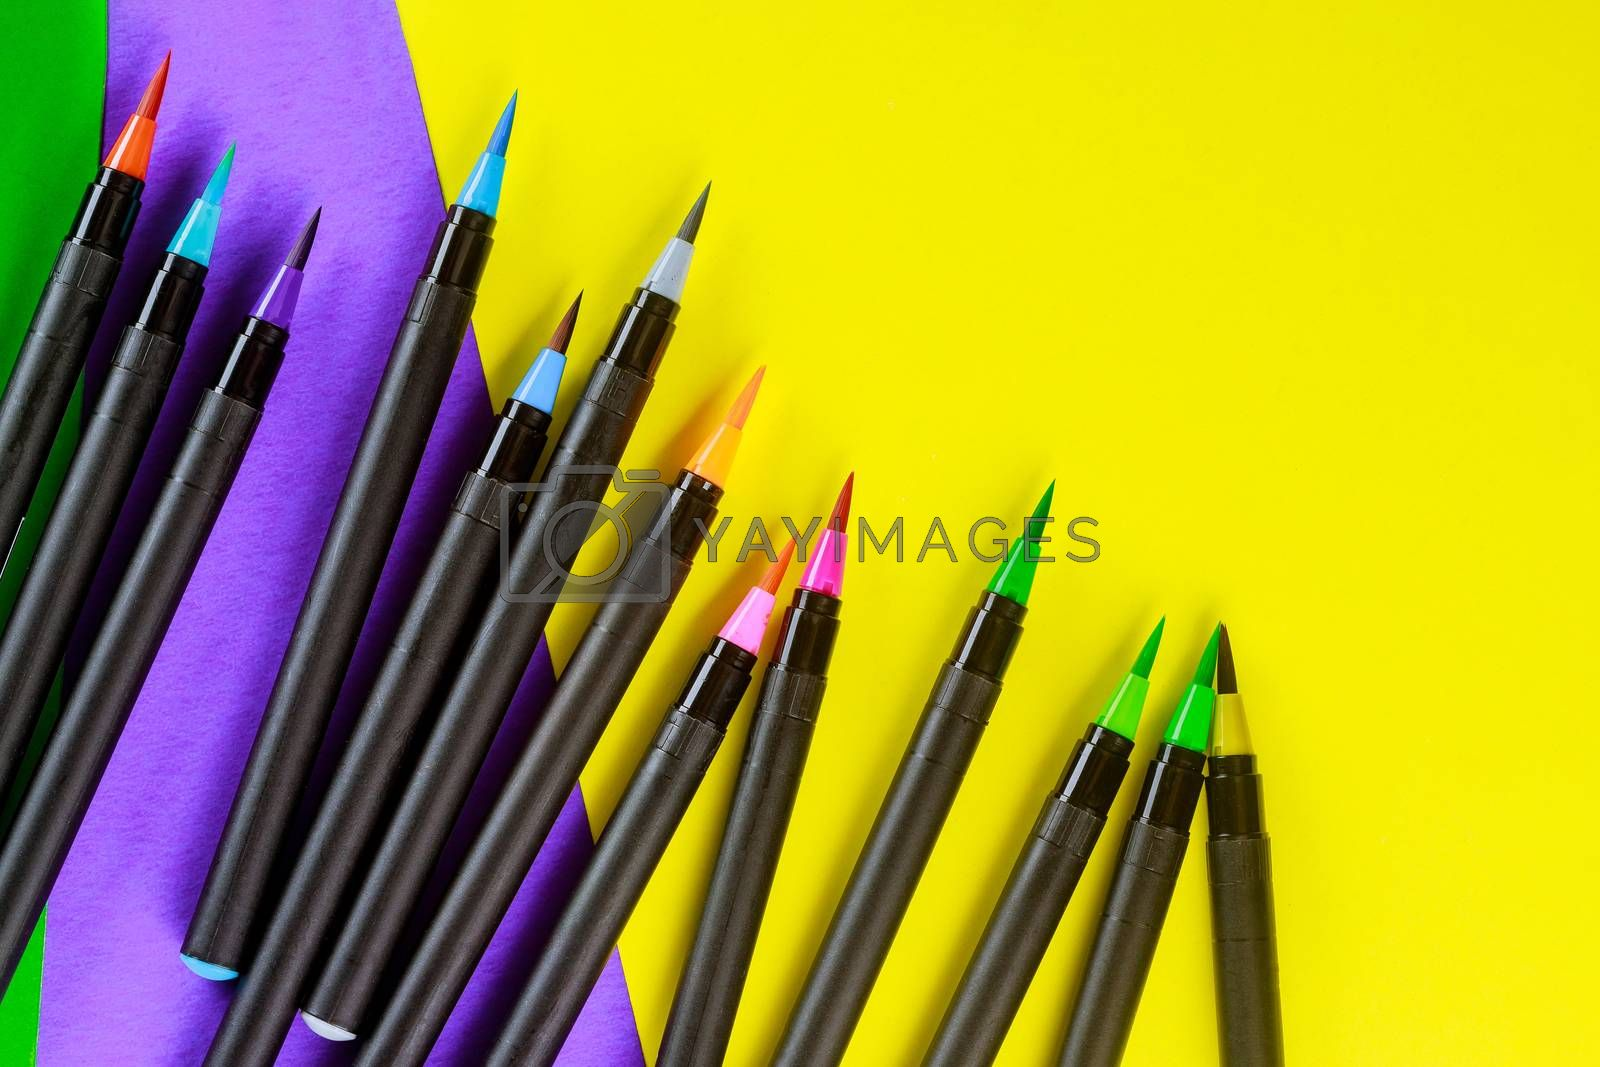 School supplies flexible watercolor brush pens for creativity